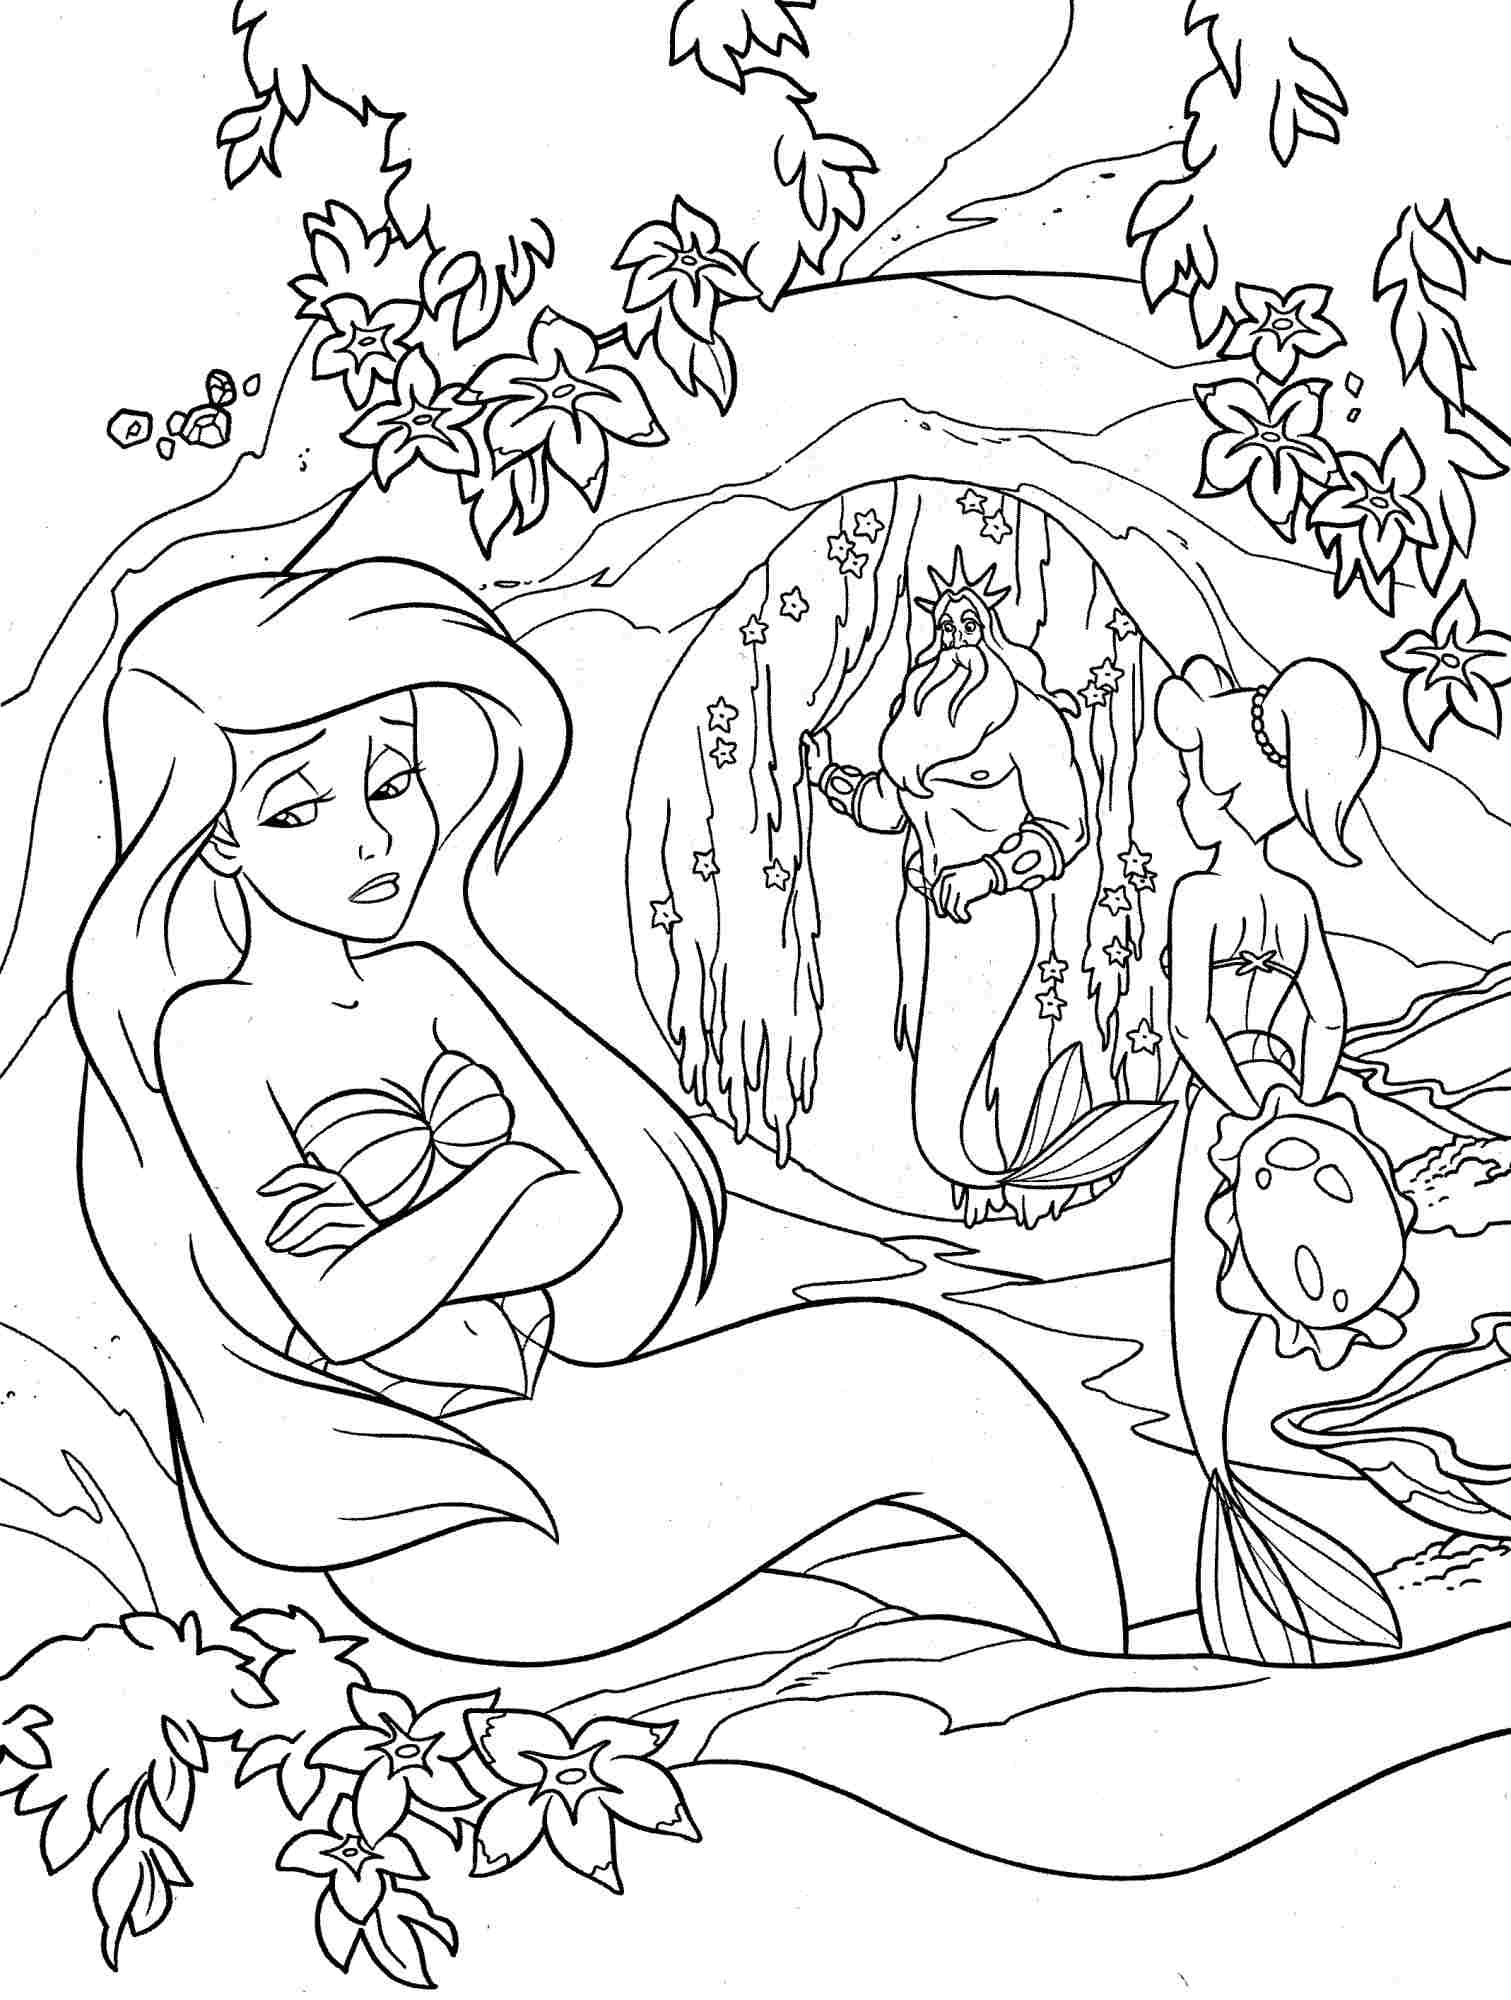 Mermaid Coloring Pages At Getcolorings